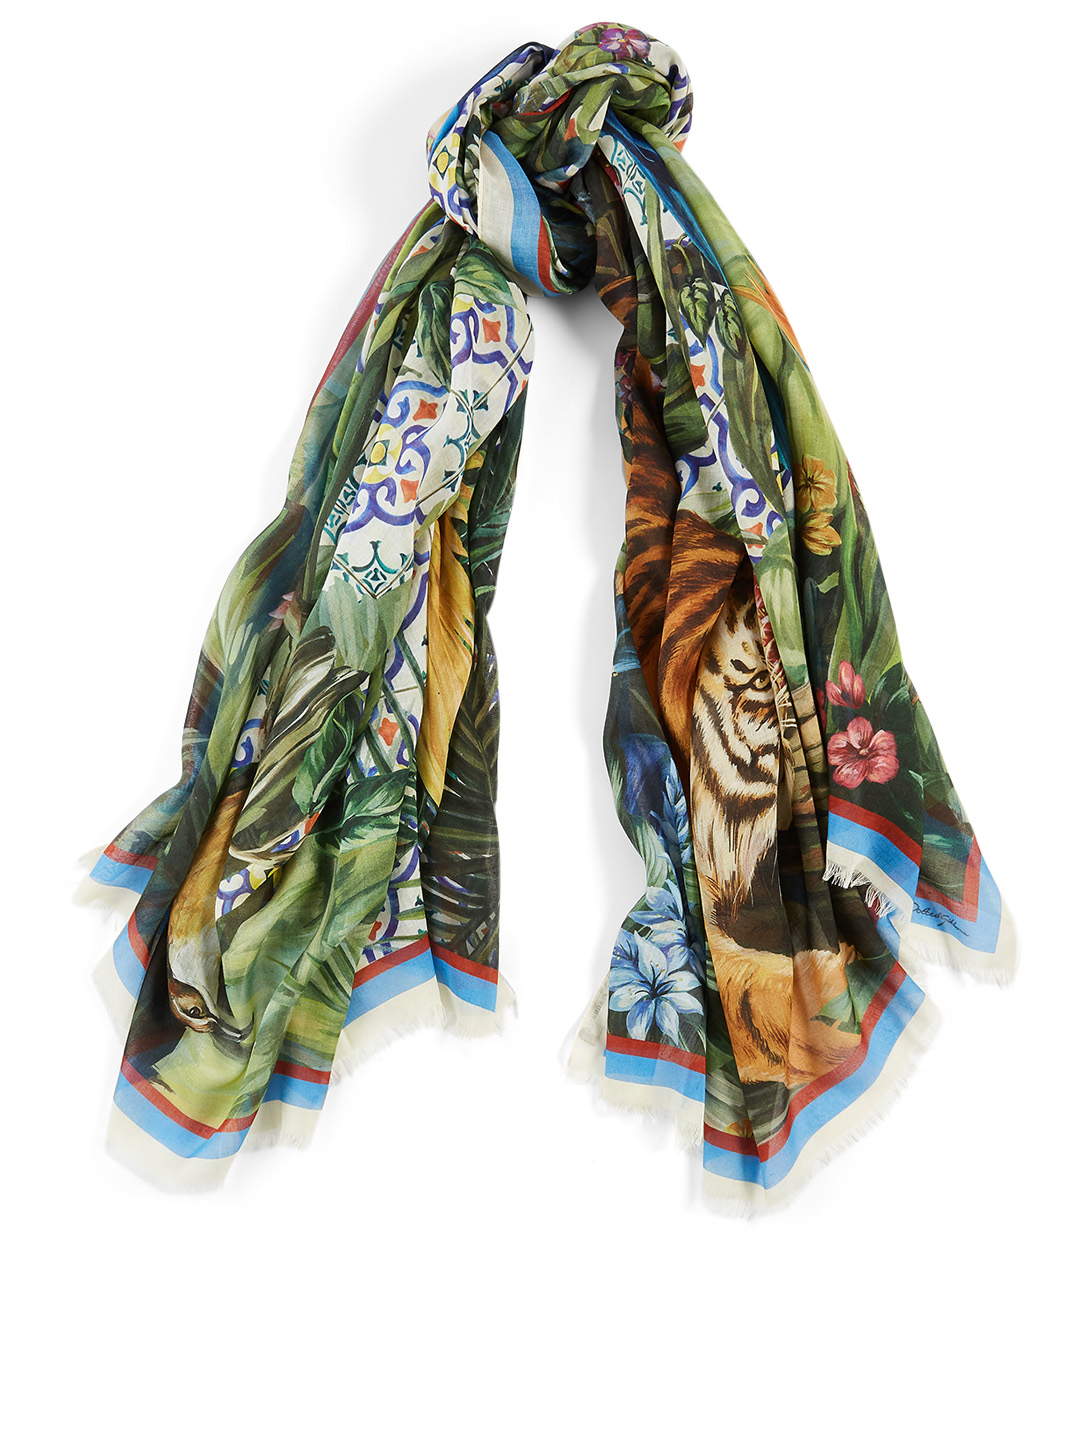 DOLCE & GABBANA Modal And Cashmere Scarf In Jungle Maiolica Print Women's Multi